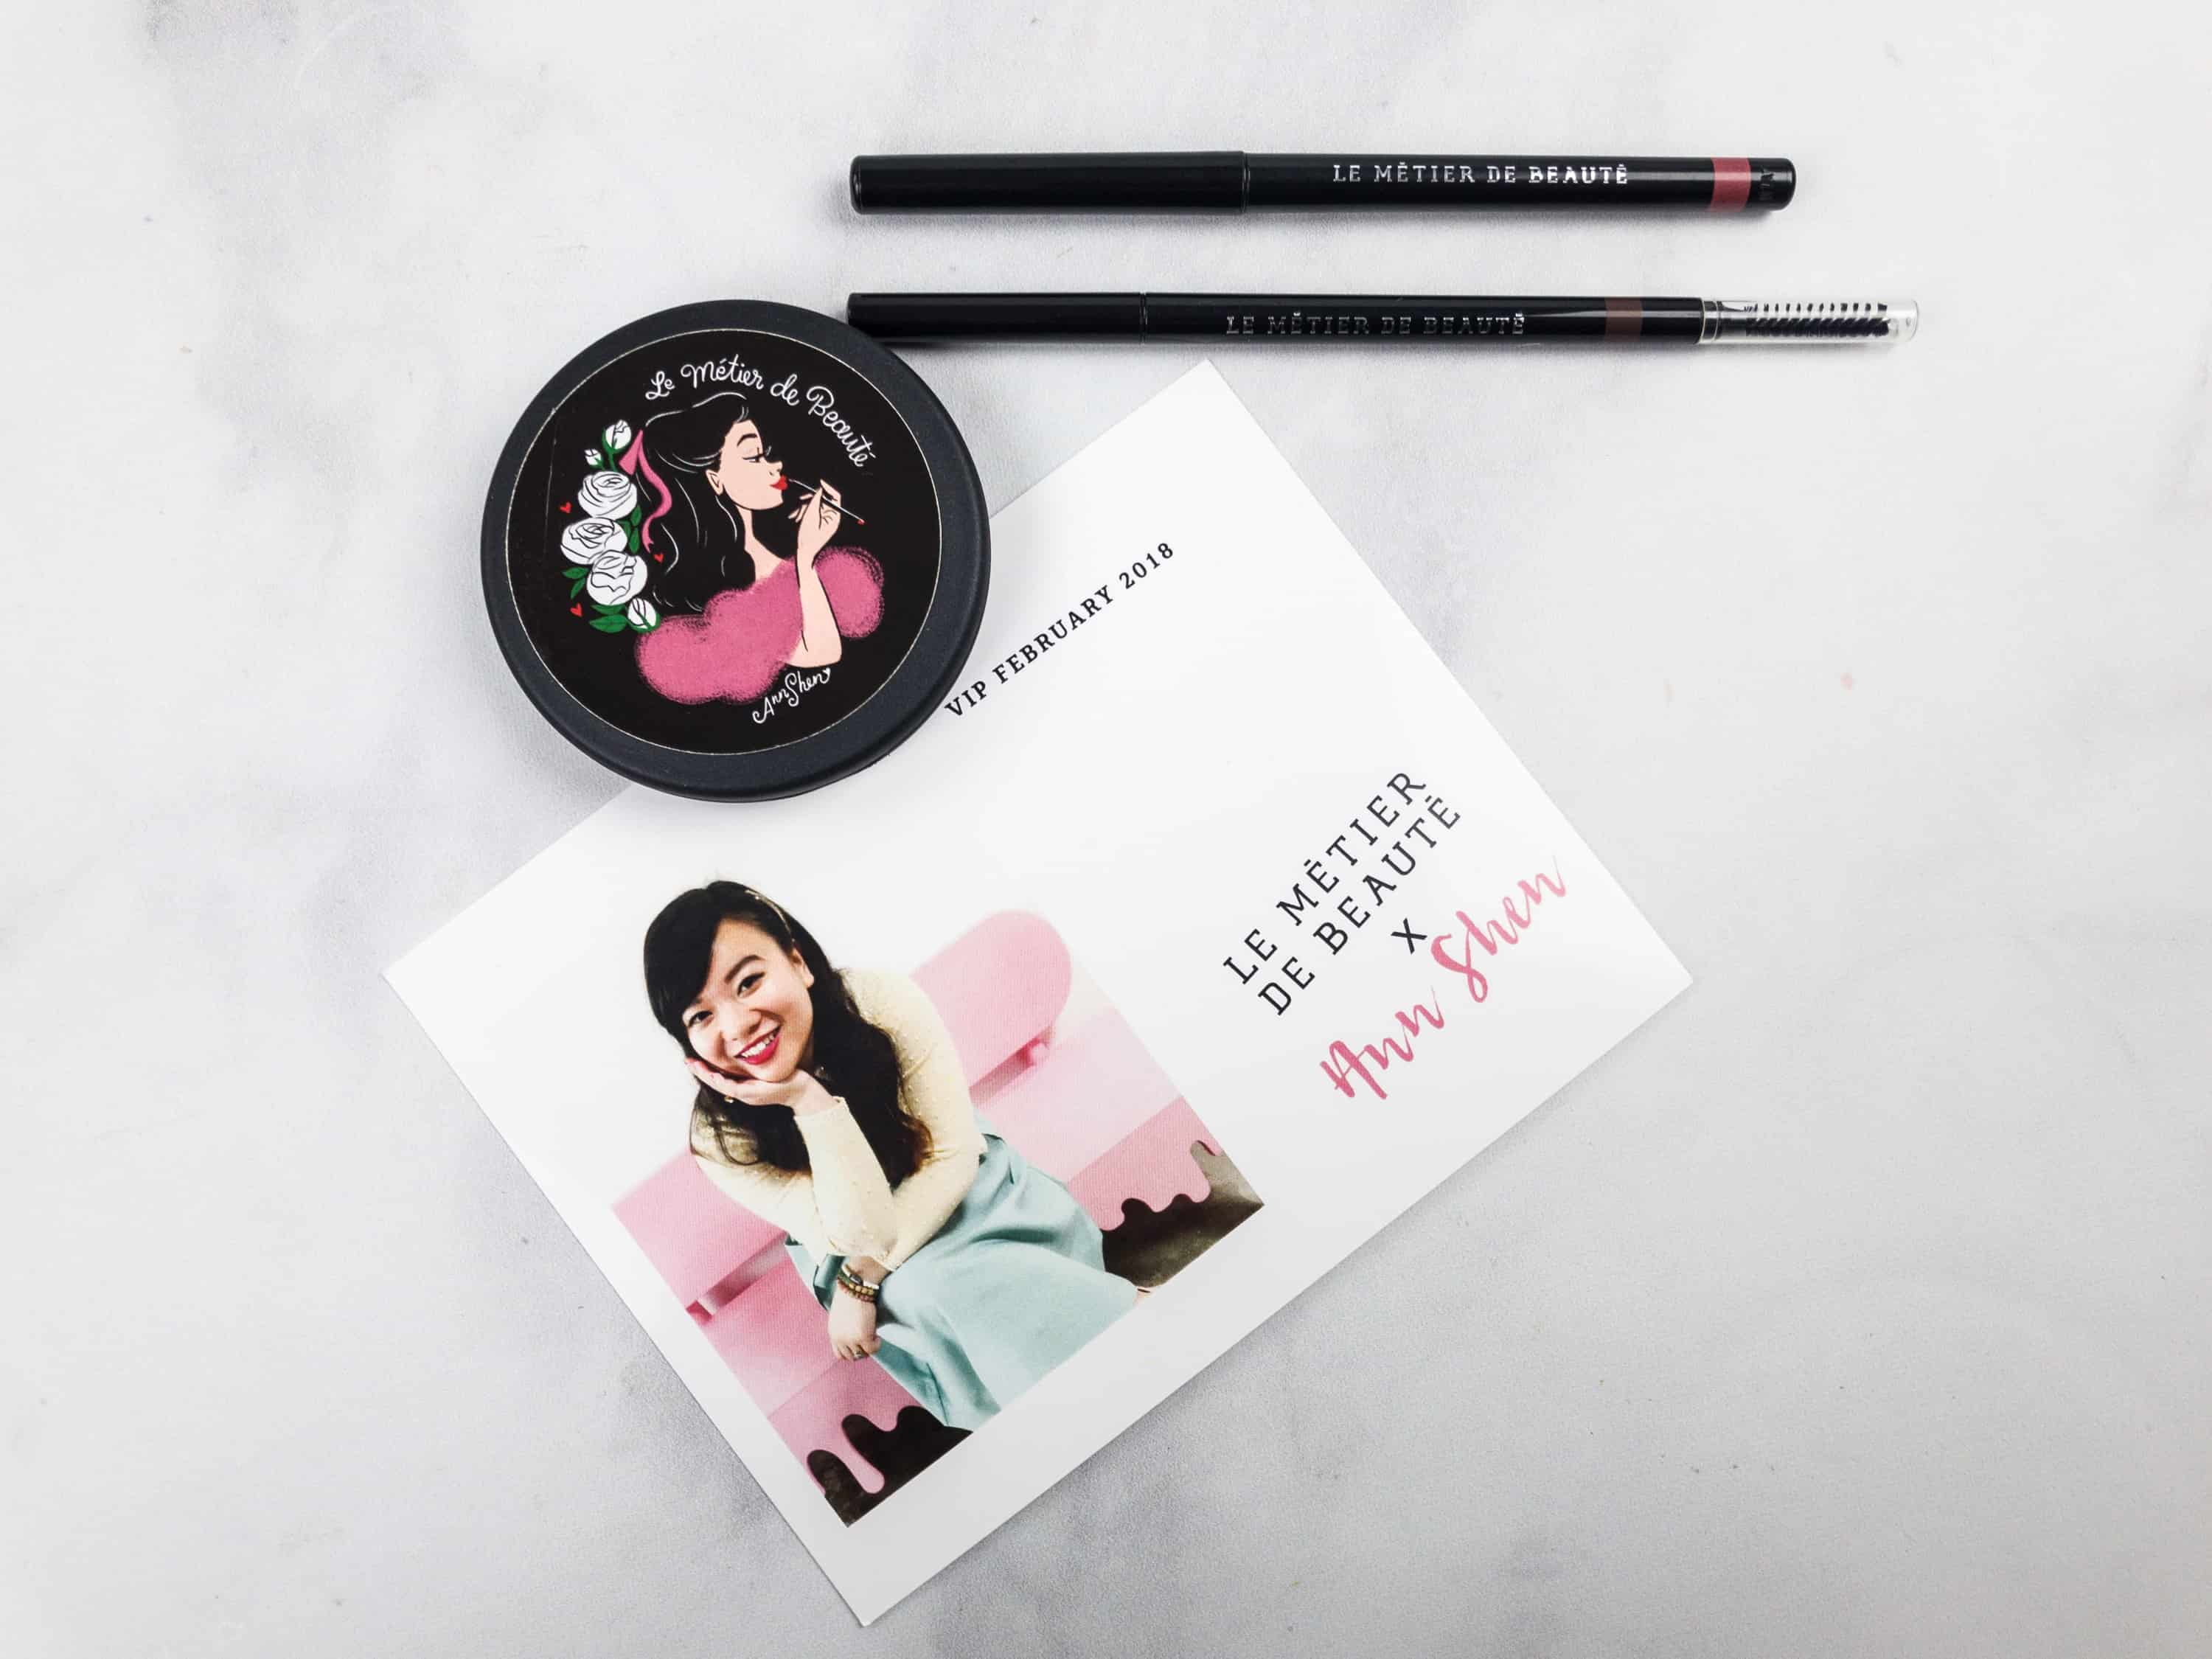 Le Métier de Beauté Beauty Vault VIP Subscription Box Review – February 2018